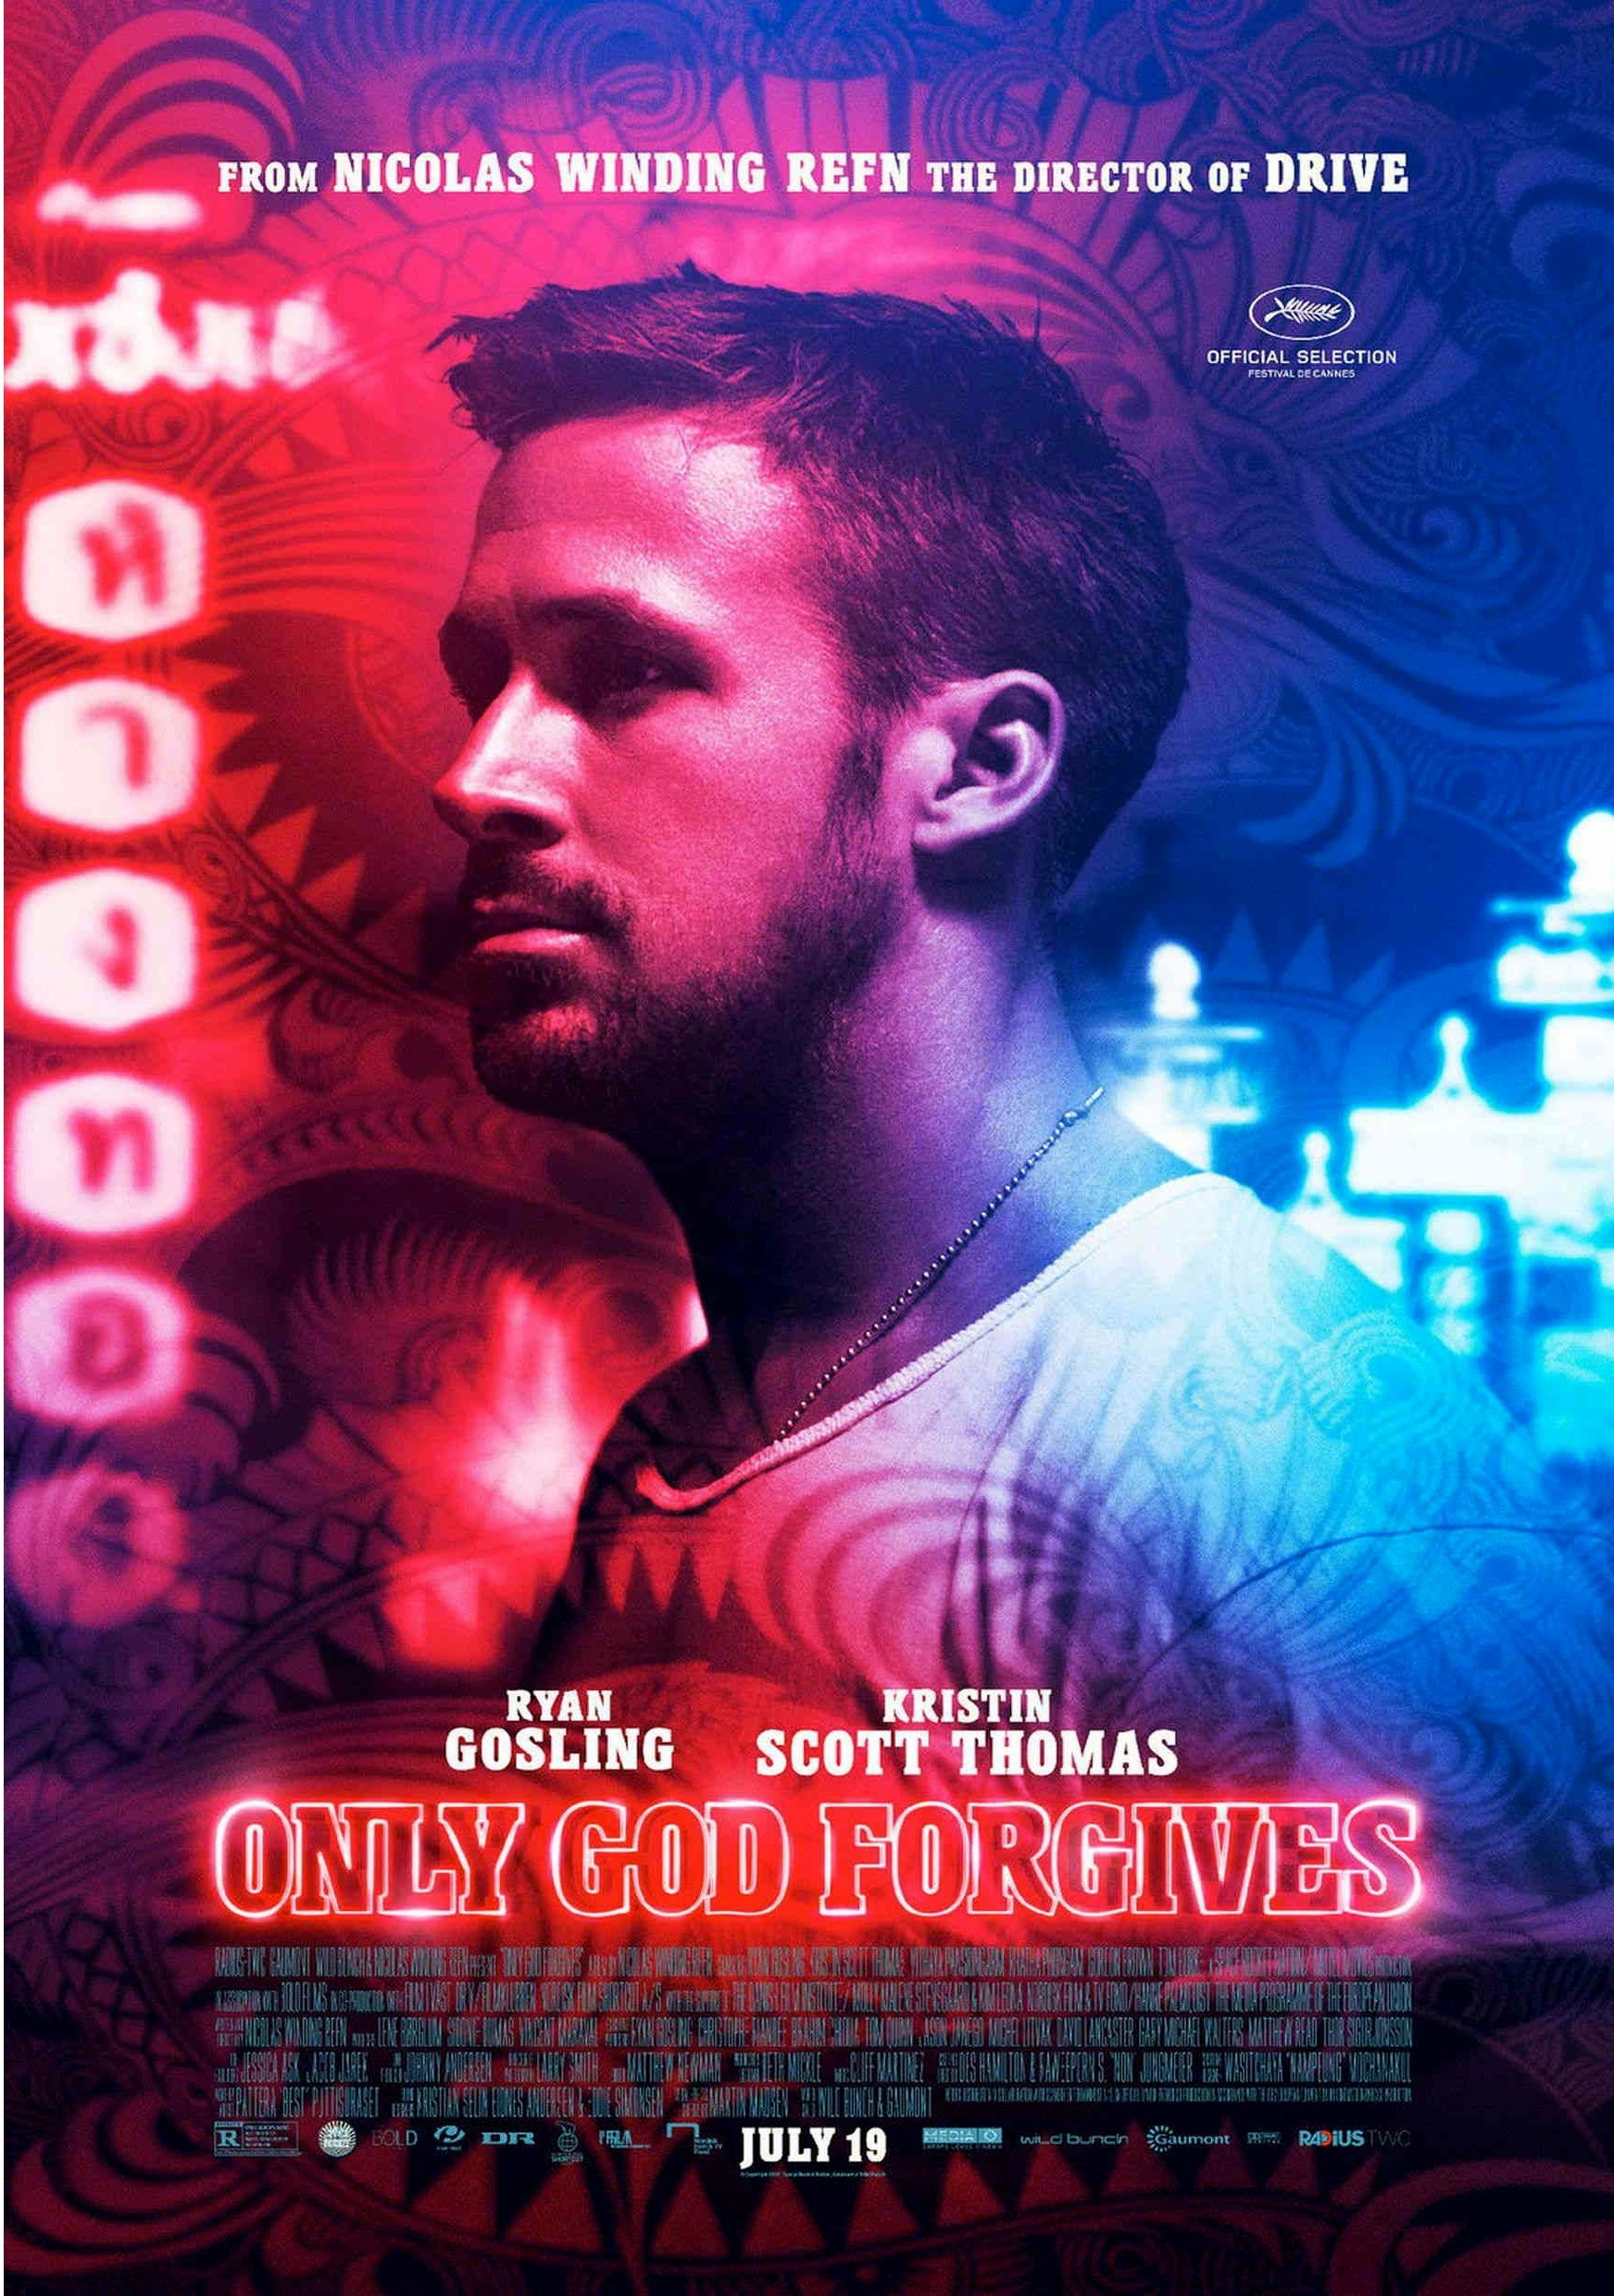 Only God Forgives (2013) - Directed By: Nicolas Winding RefnStarring: Ryan Gosling, Kristin Scott Thomas, Vithaya PansringarmRated: RRun Time: 1h 30mTMM Score: 3 StarsStrengths: Visuals, ScoreWeakness: Acting, Shallow Substance